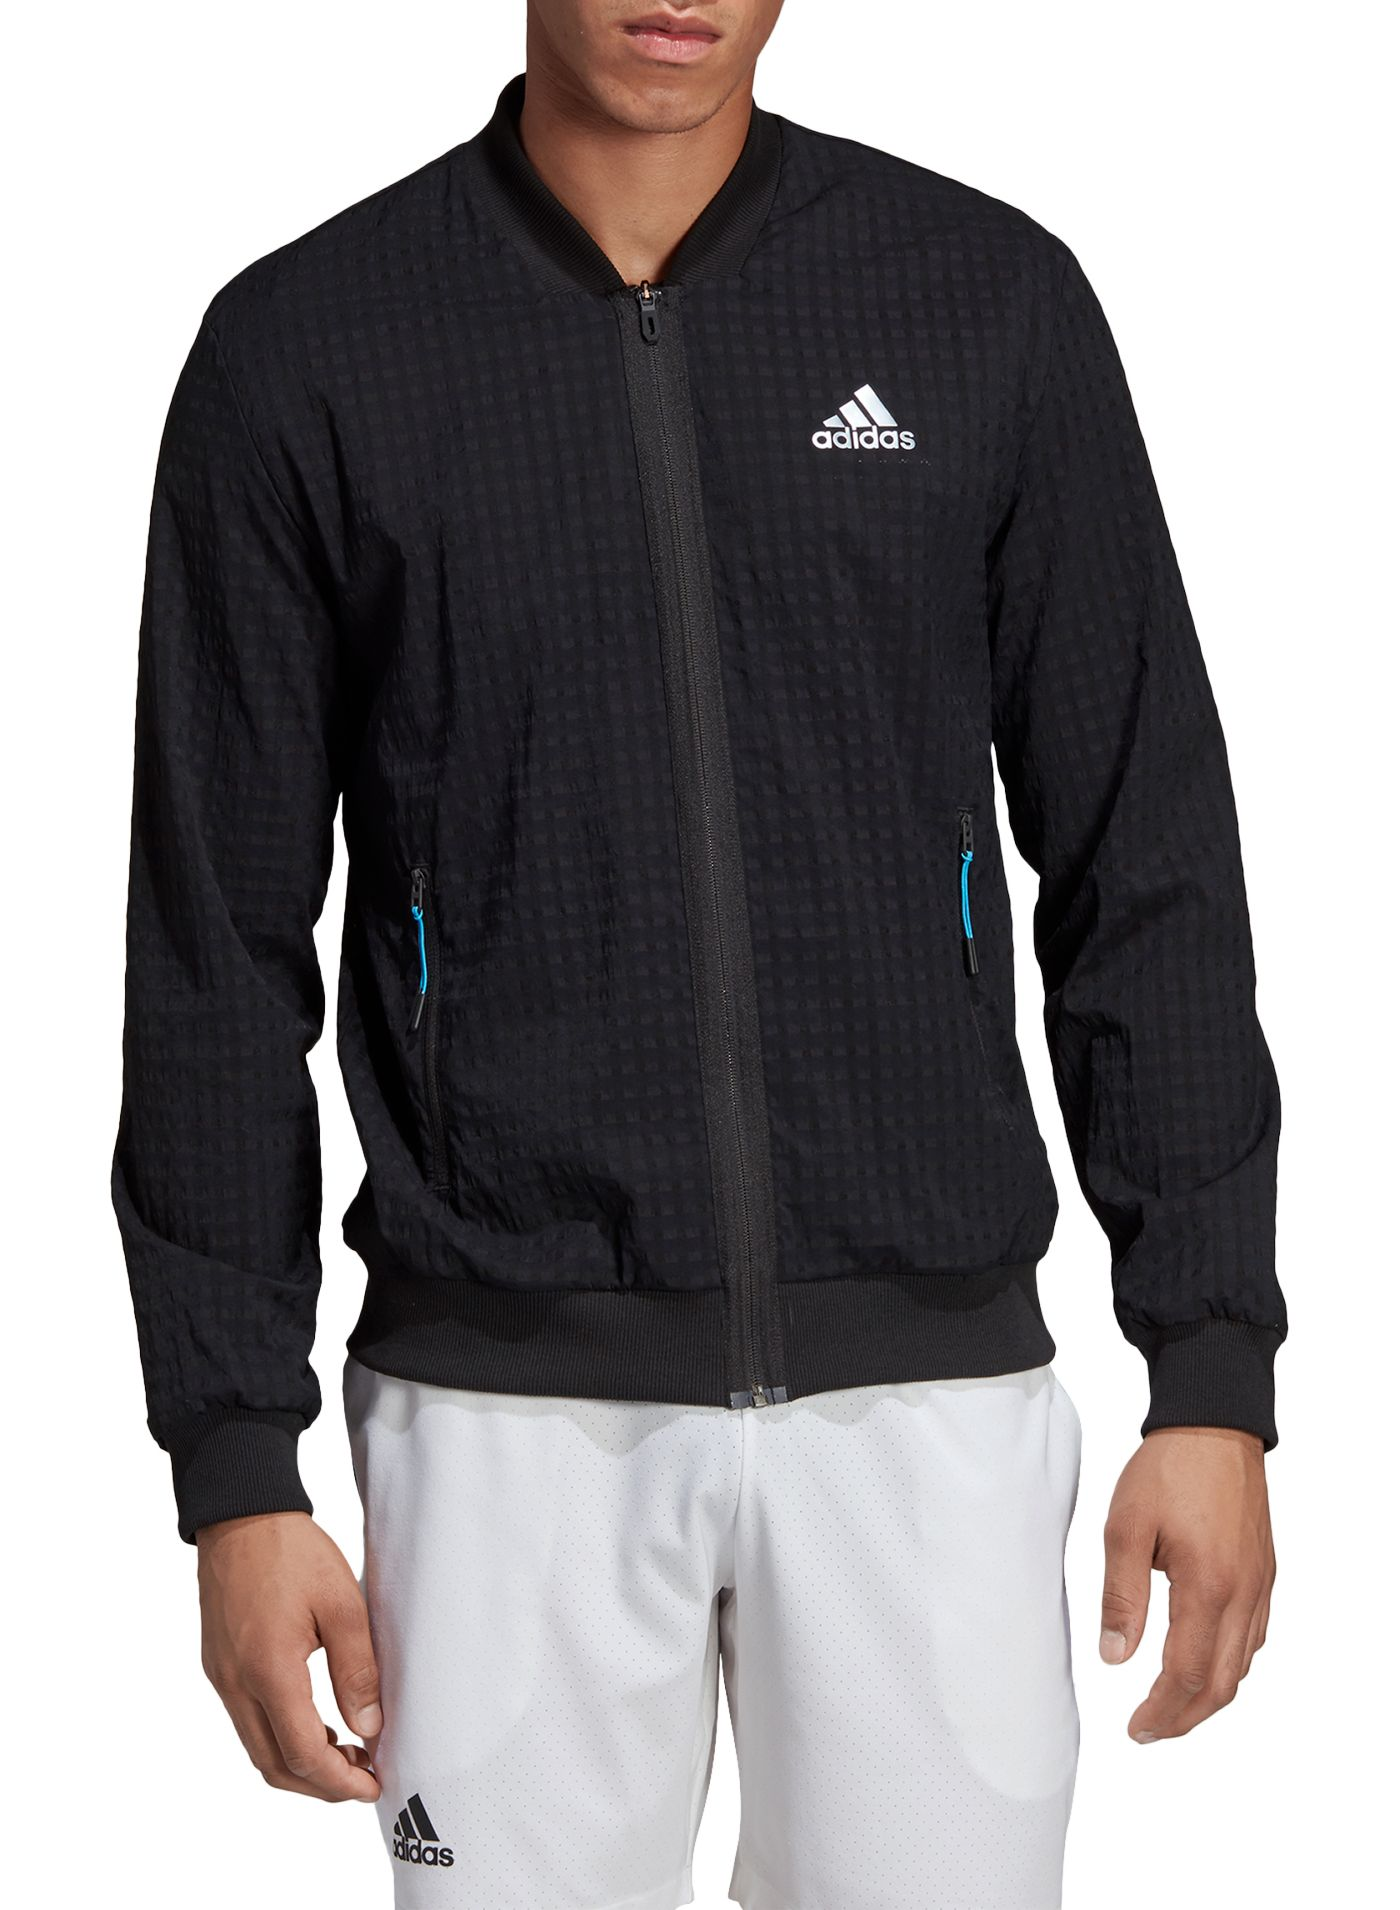 adidas Men's Escouade Tennis Jacket